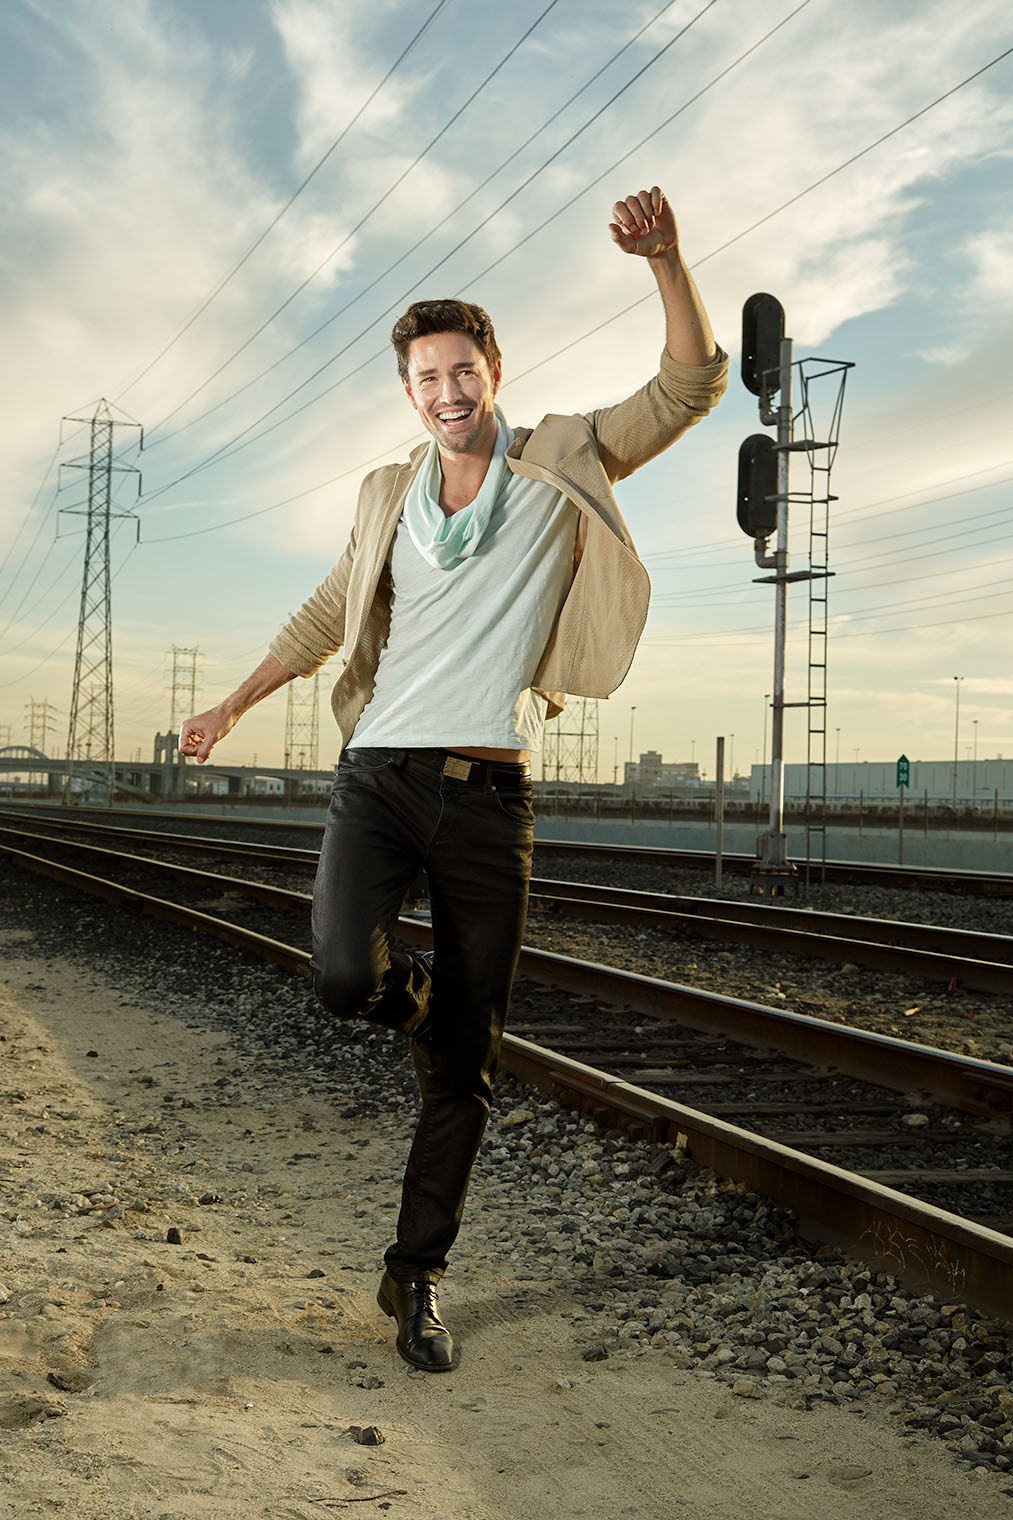 man dancing on rail tracks waring denim and mens shoes in Los Angeles